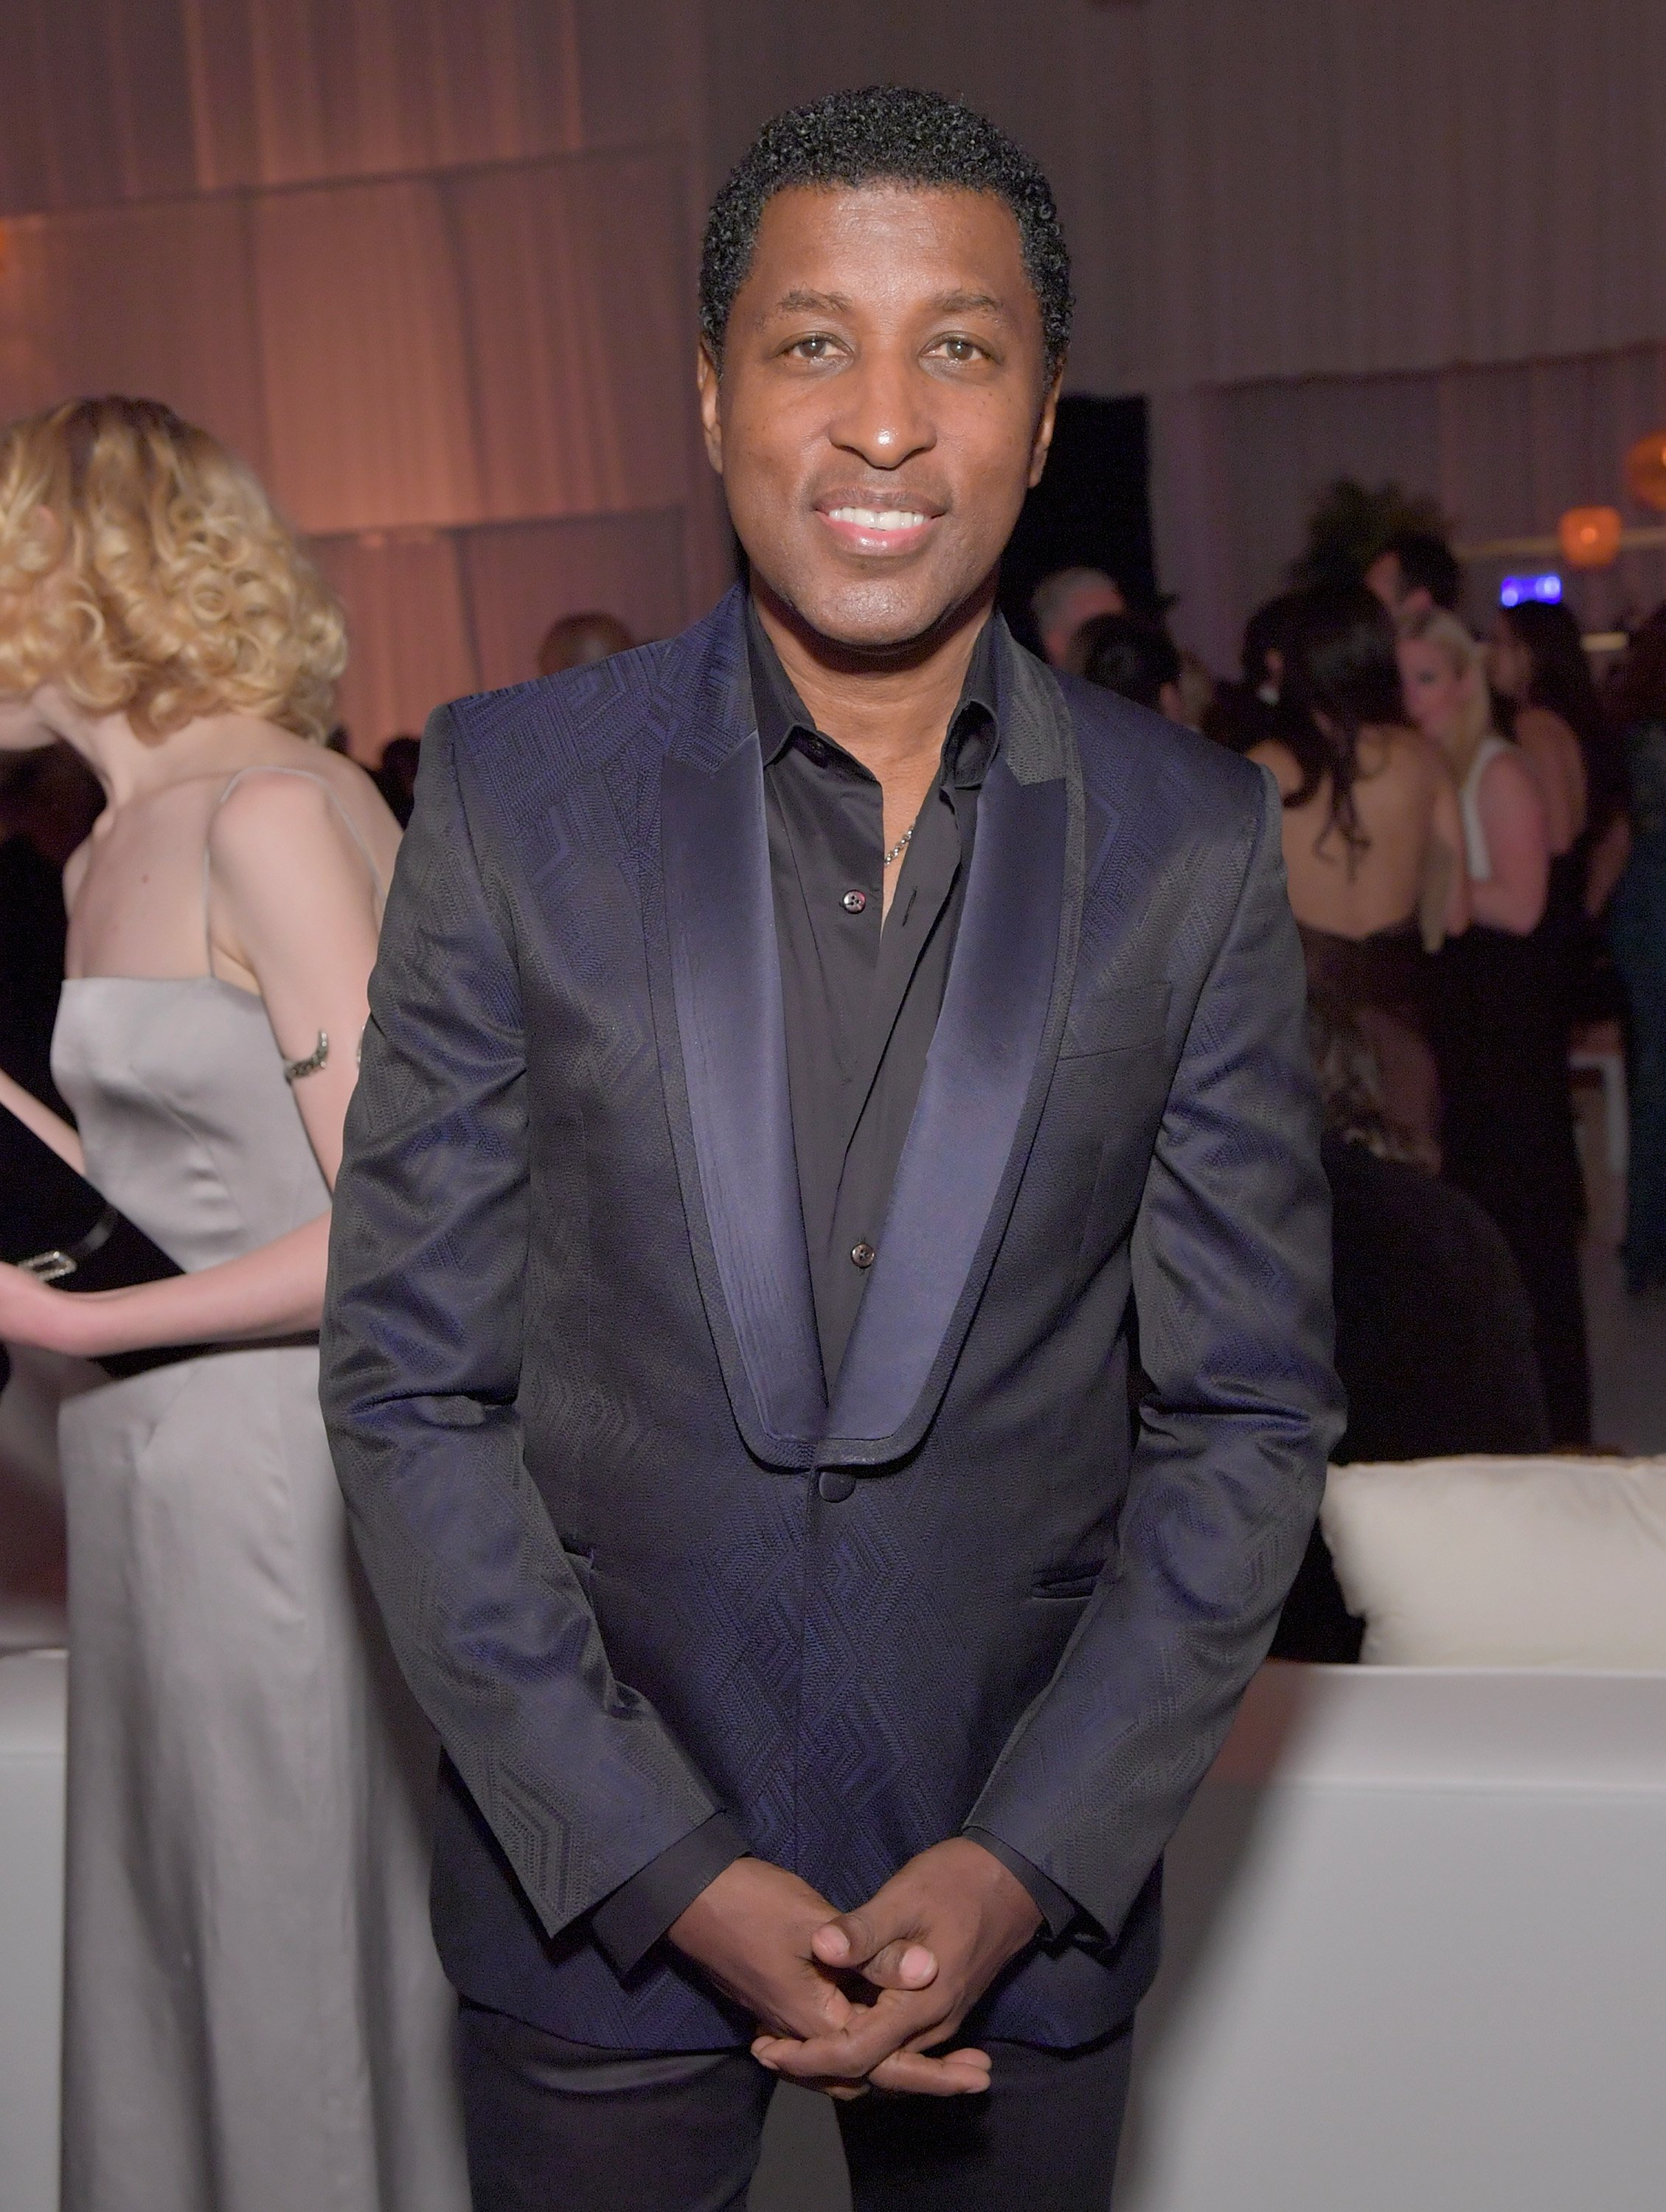 Singer/Songwriter Babyface at music event in January 2017. | Photo: Getty Images